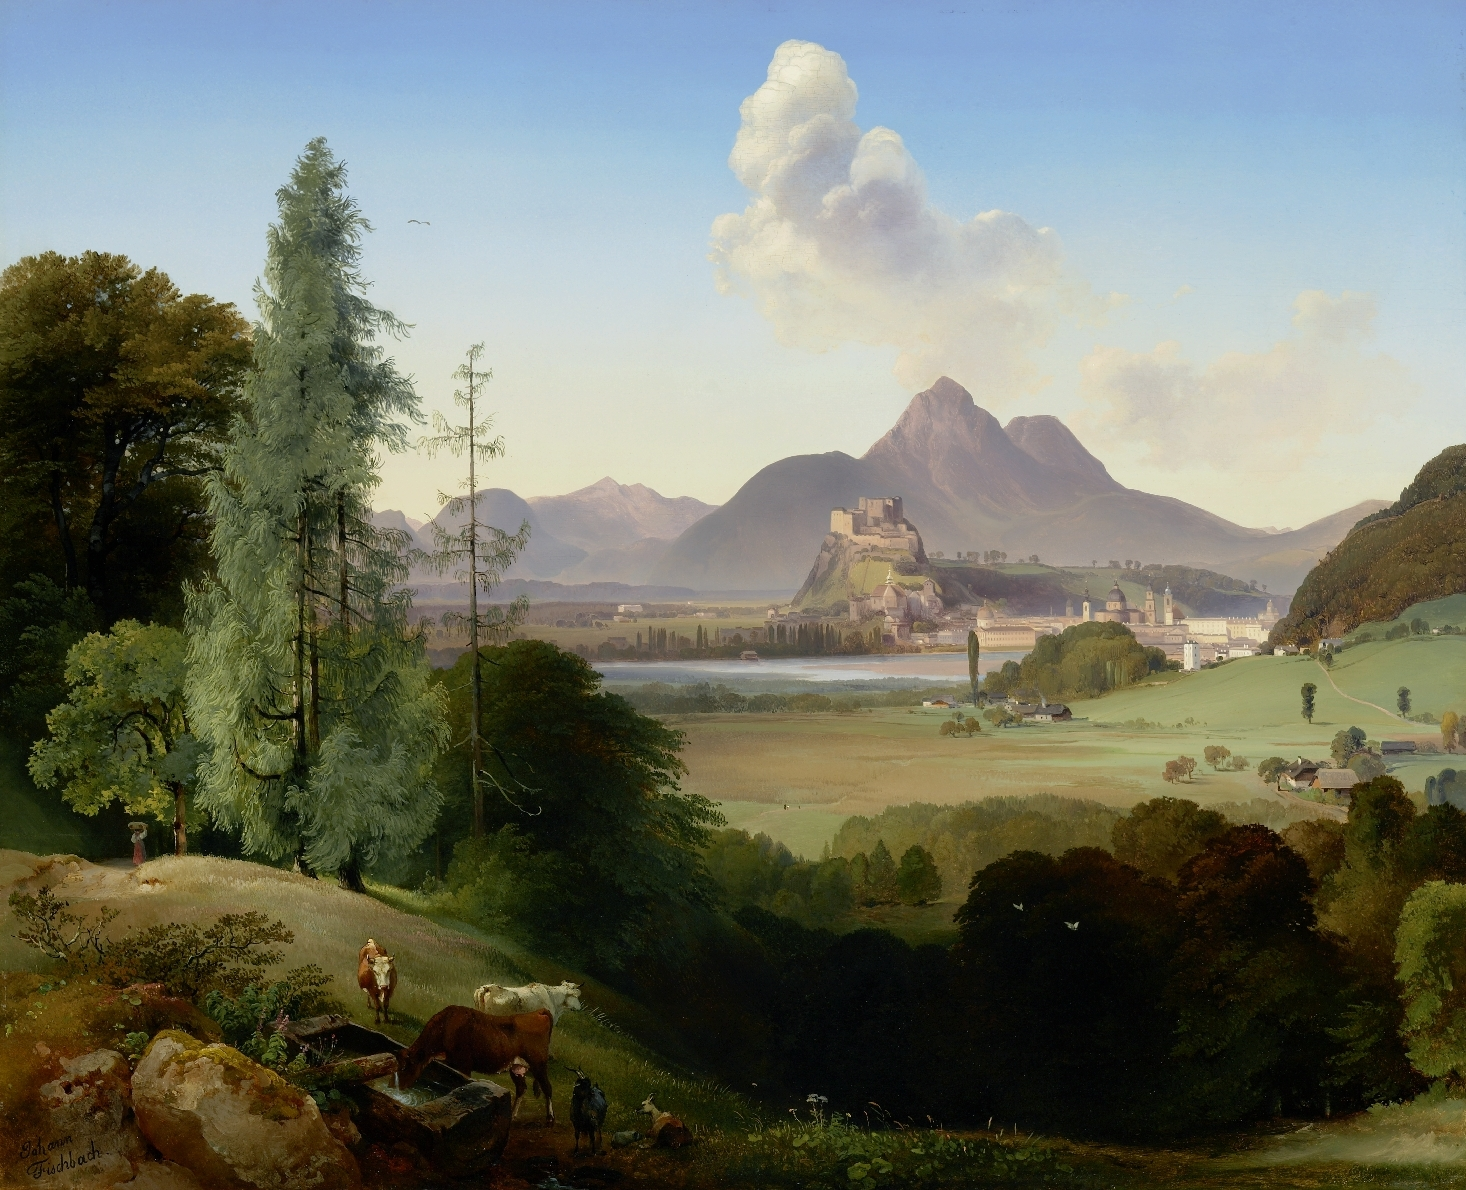 Salzburg seen from Parsch, Johann Fischbach, 1840, inv. no. 1038-2003